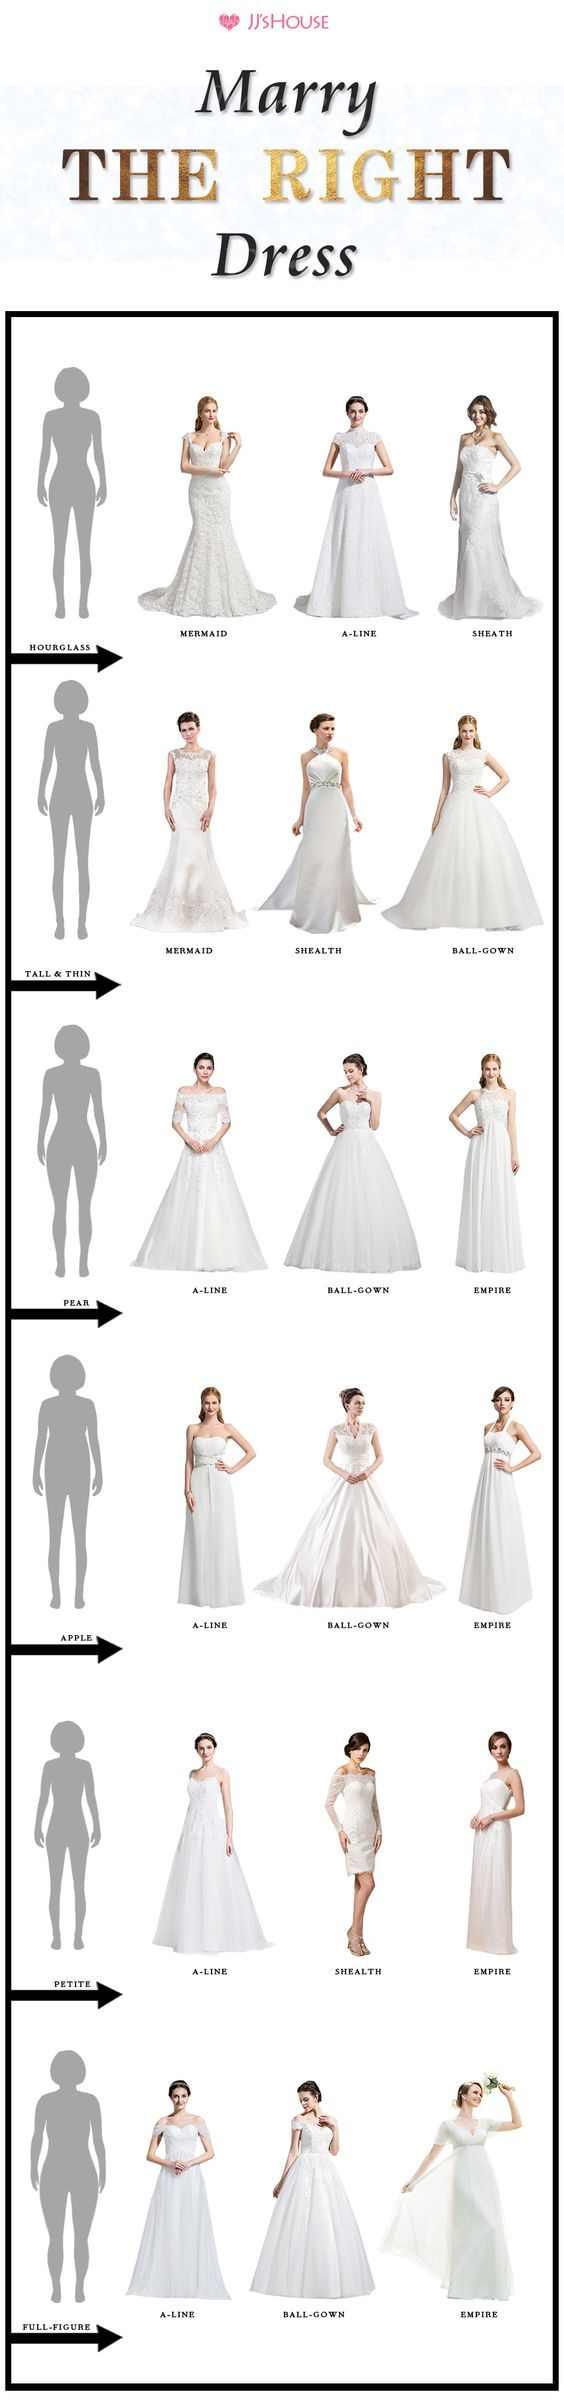 Marry the right dress find the perfect dress for your body type